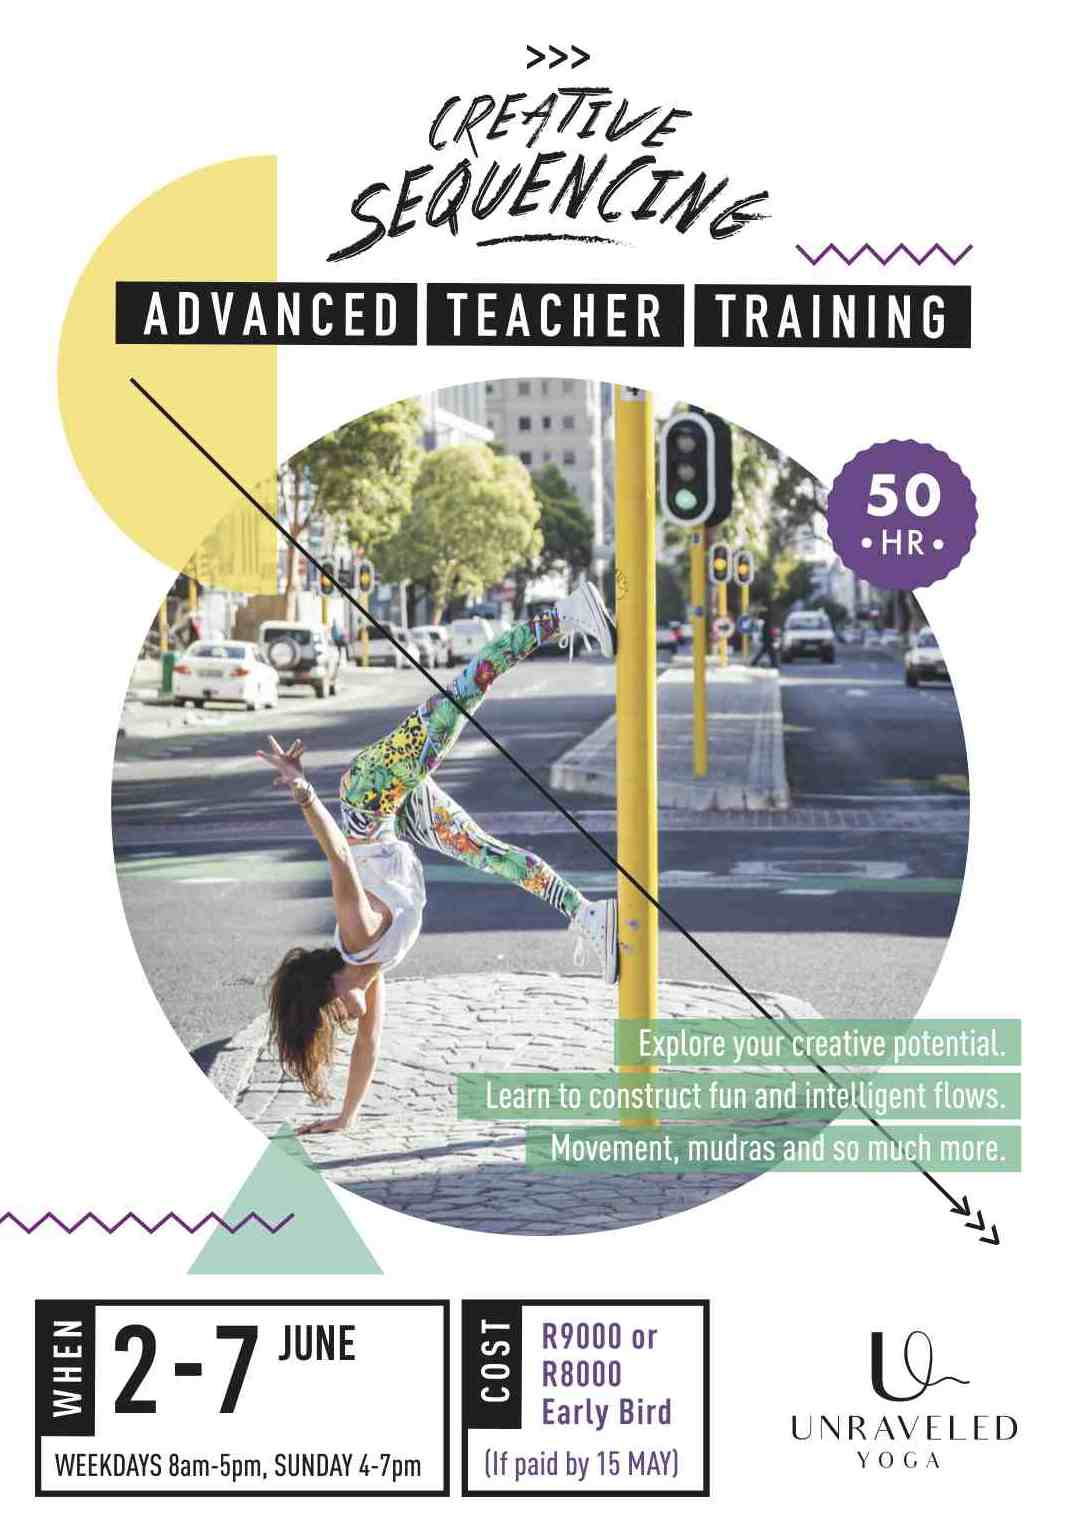 advanced yoga teacher training cape town creative sequencing